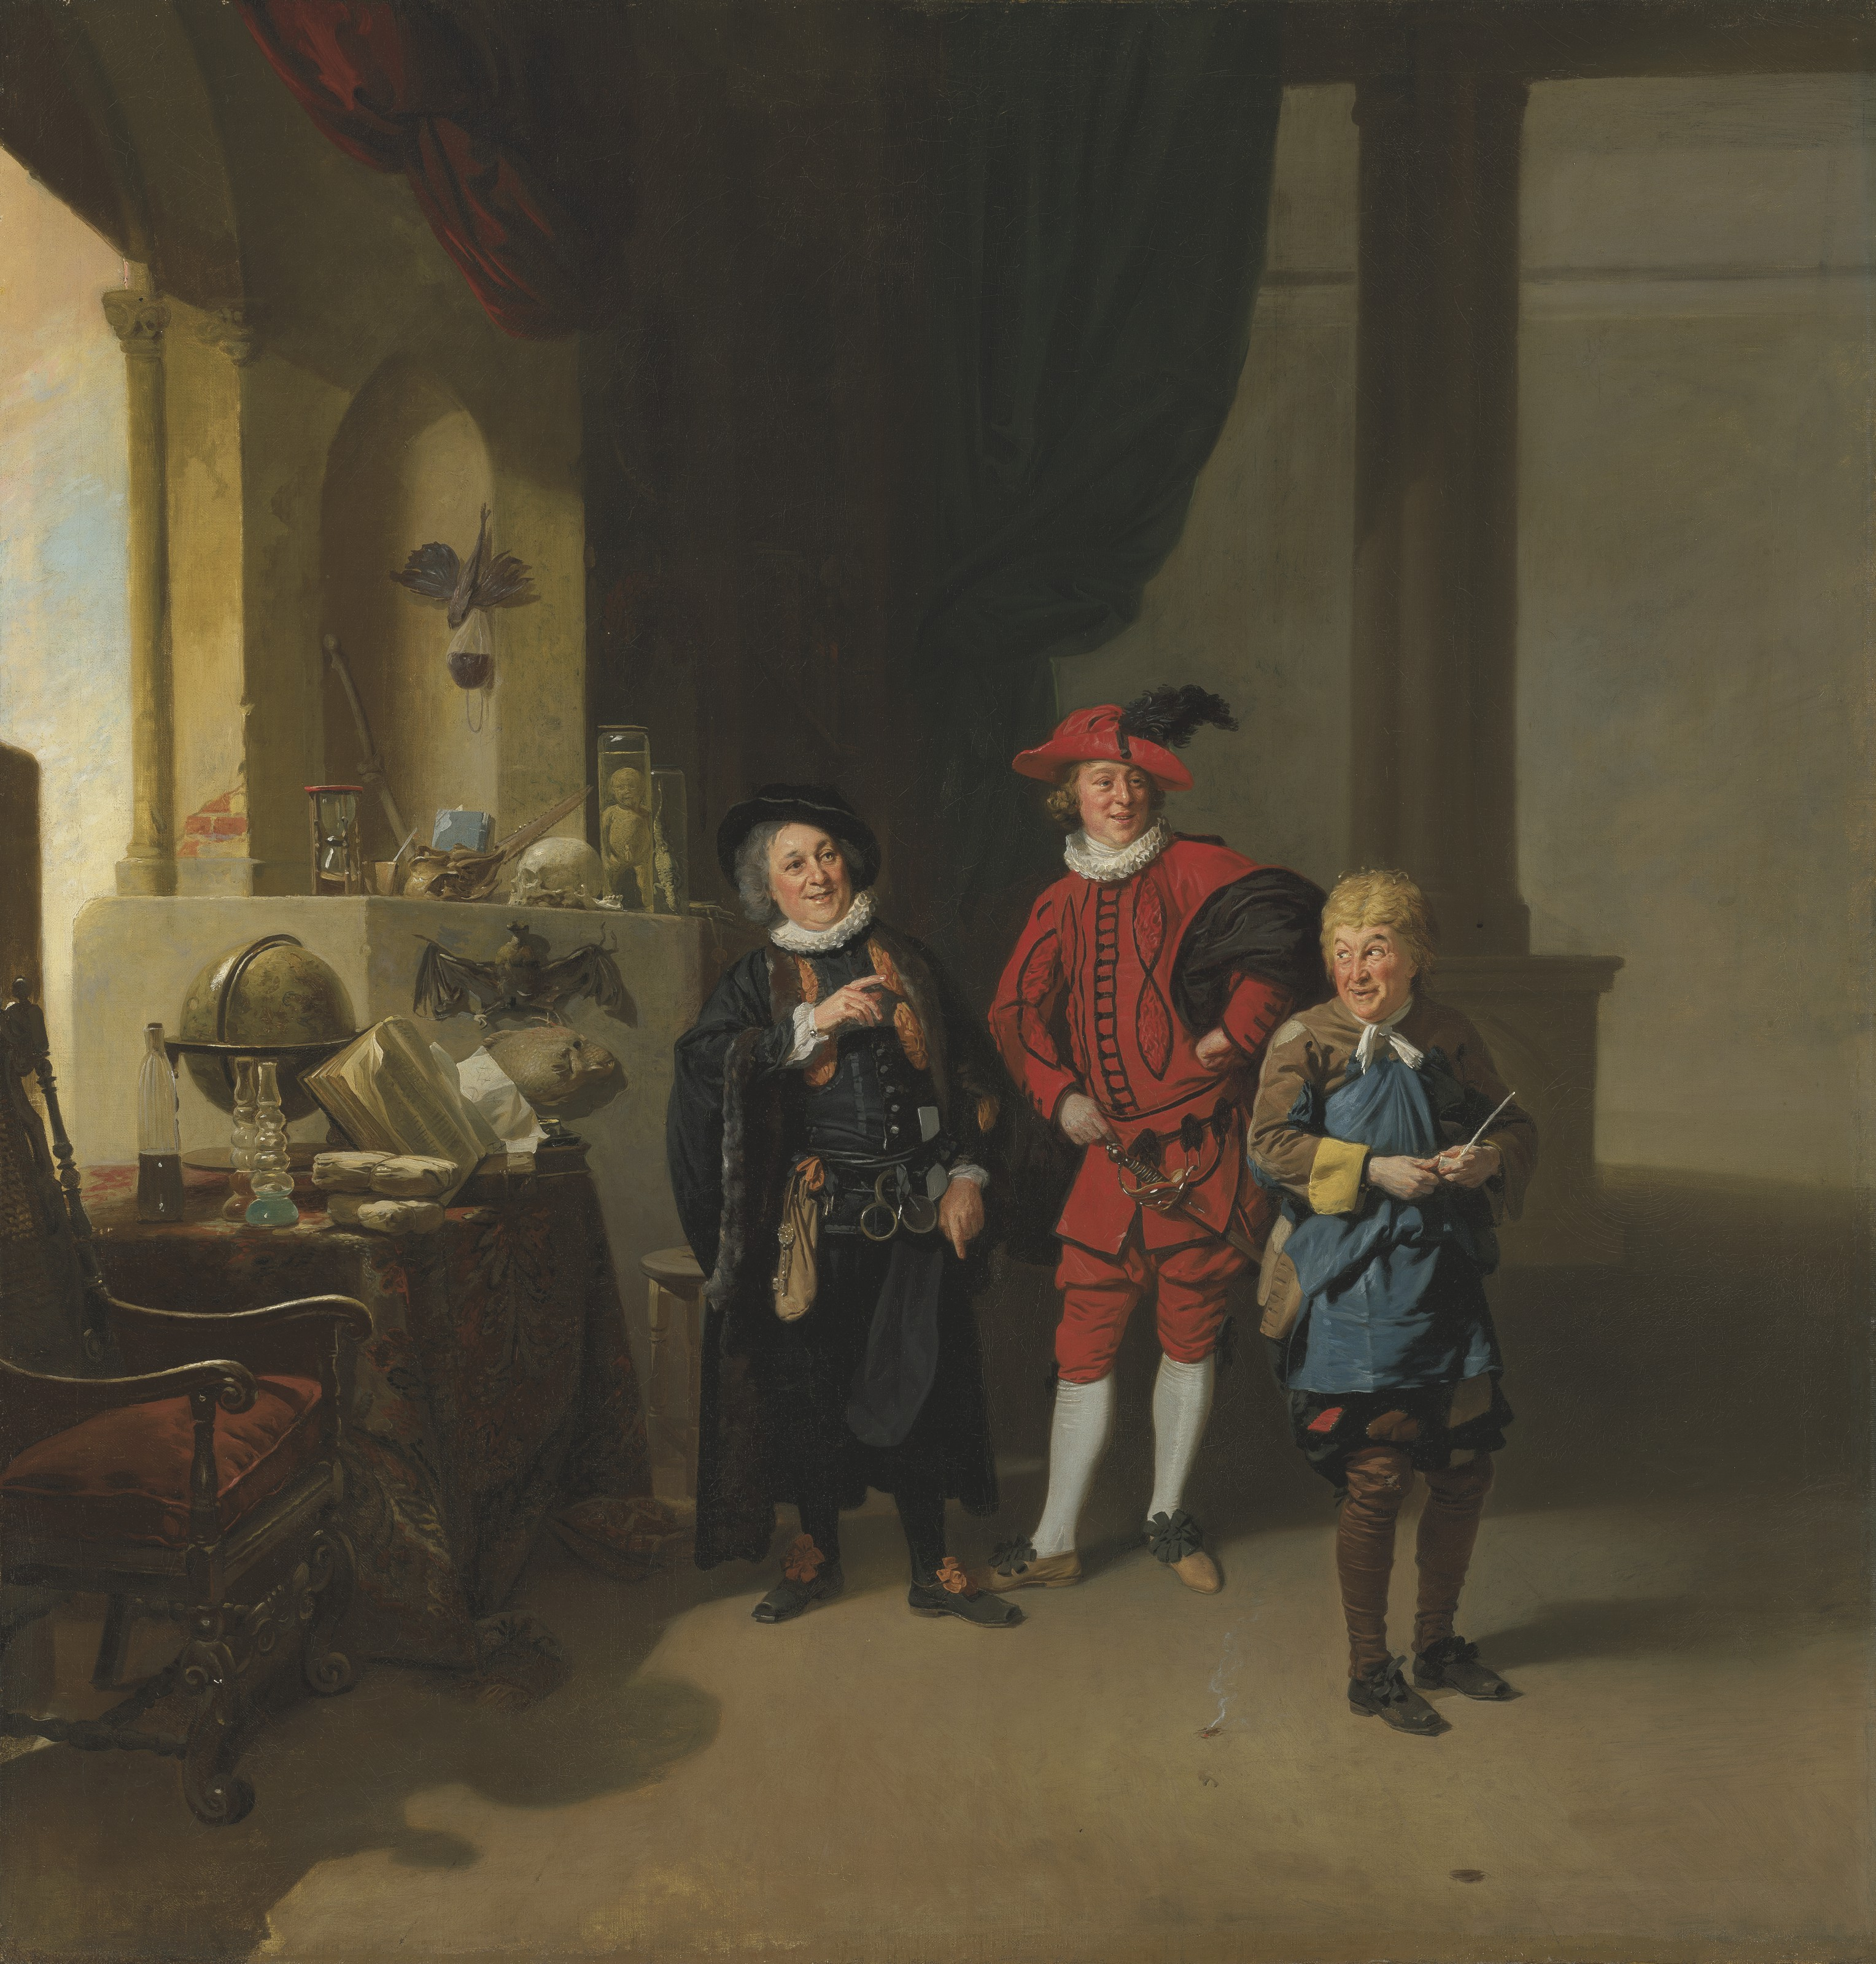 Johann Zoffany, R.A. (Frankfurt 1733-1810 London), Garrick with Burton and Palmer in The Alchymist. Oil on canvas. 41⅞ x 40⅛ in (106.5 x 101.9 cm). Estimate £1,000,000-1,500,000. Offered in Old Masters Evening Sale on 8 July 2021 at Christie's in London